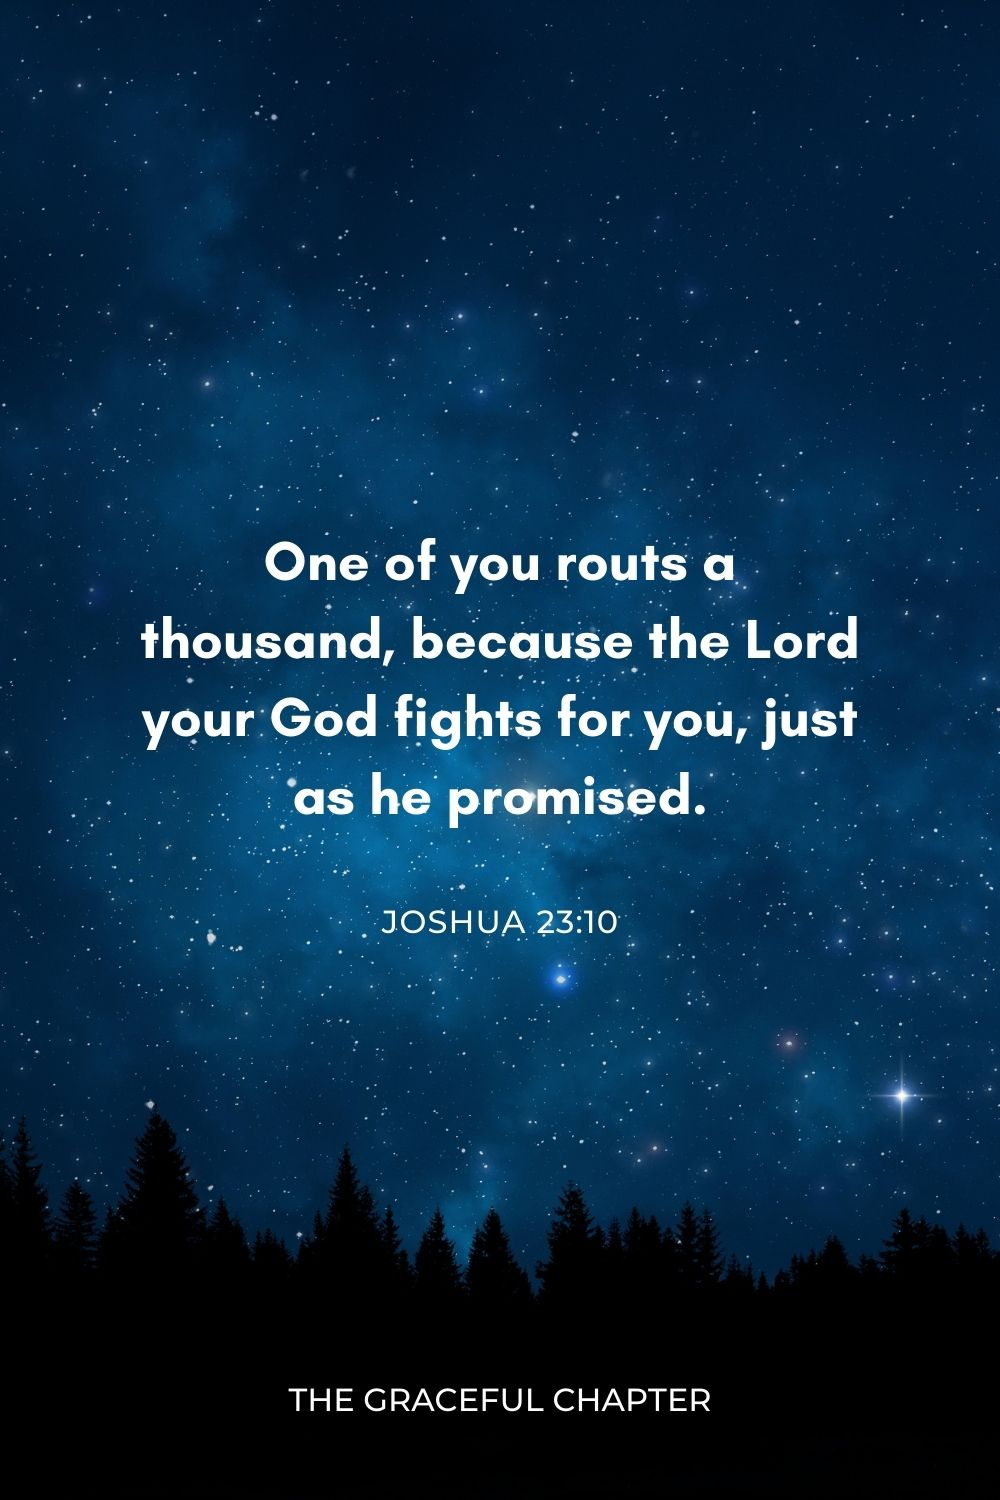 One of you routs a thousand, because the Lord your God fights for you, just as he promised. Joshua 23:10